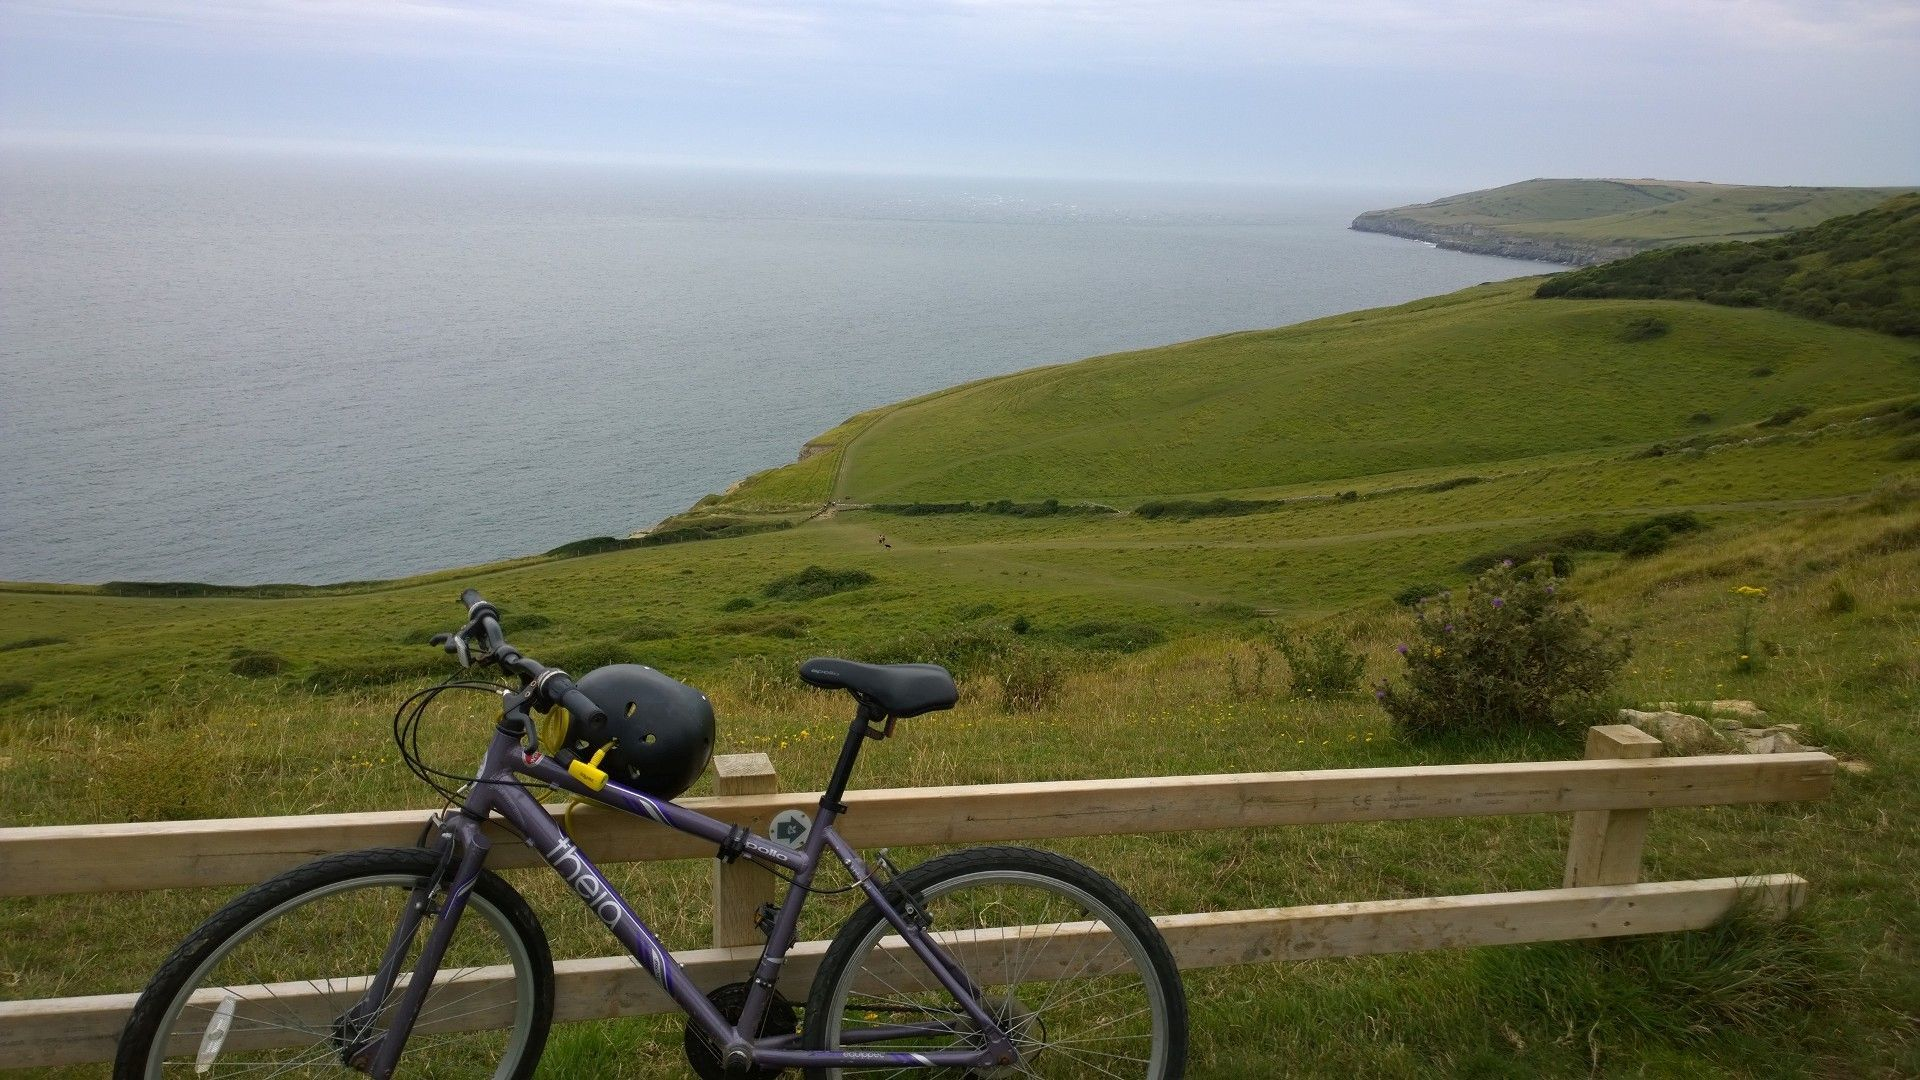 Cycle at Dancing Ledge to improve your wellbeing